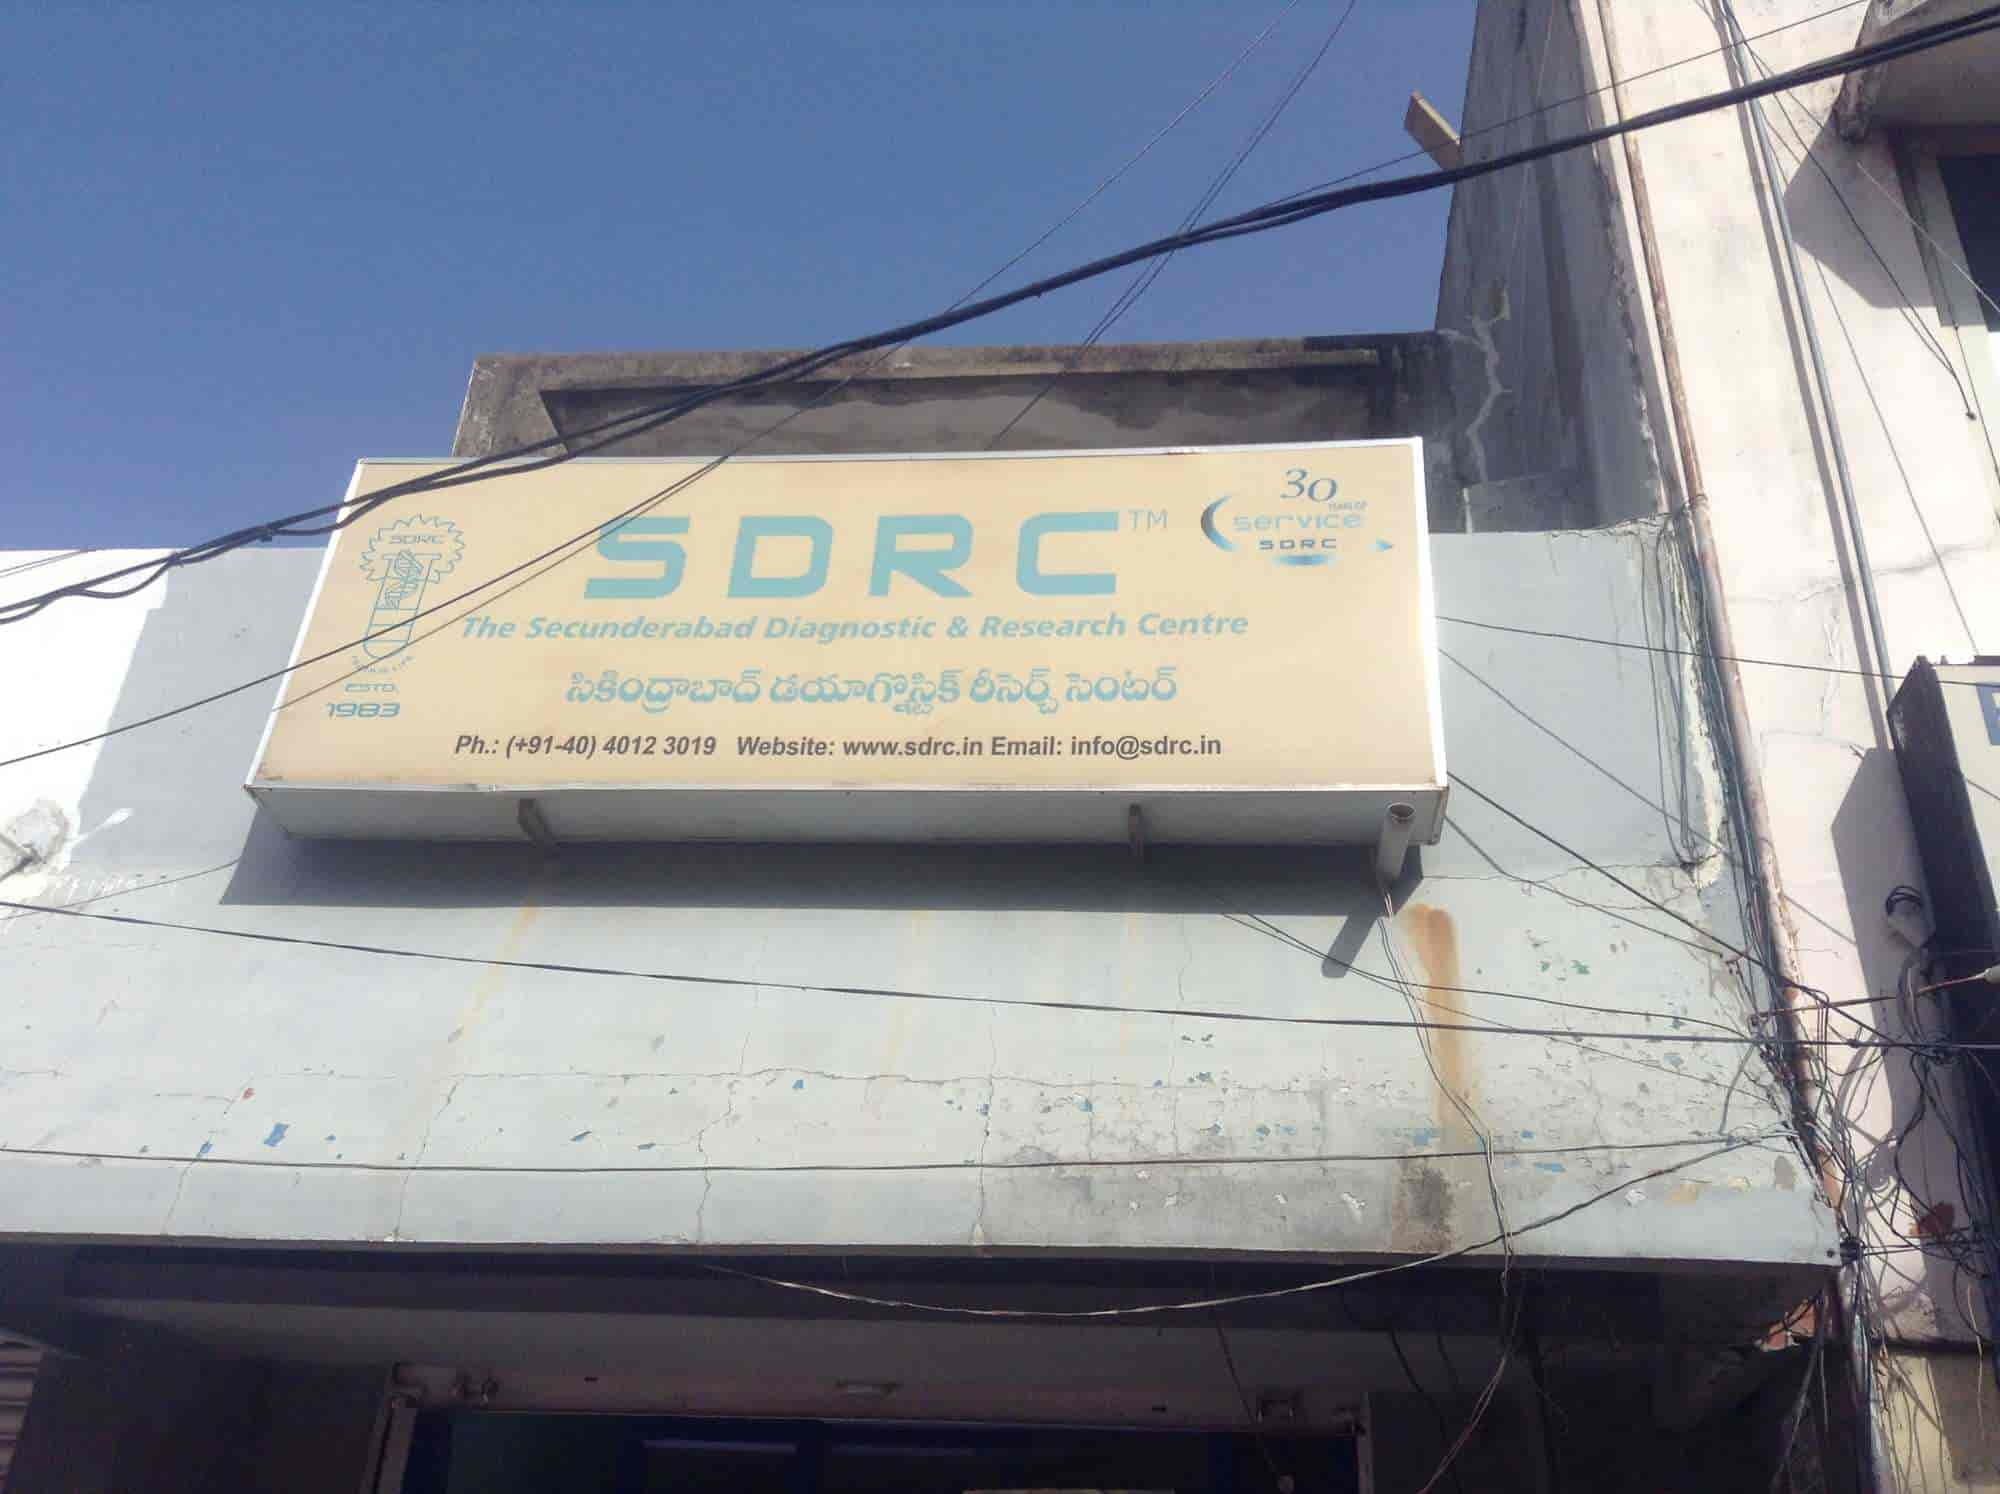 Secunderabad Diagnostic & Research Centre, West Marredpally